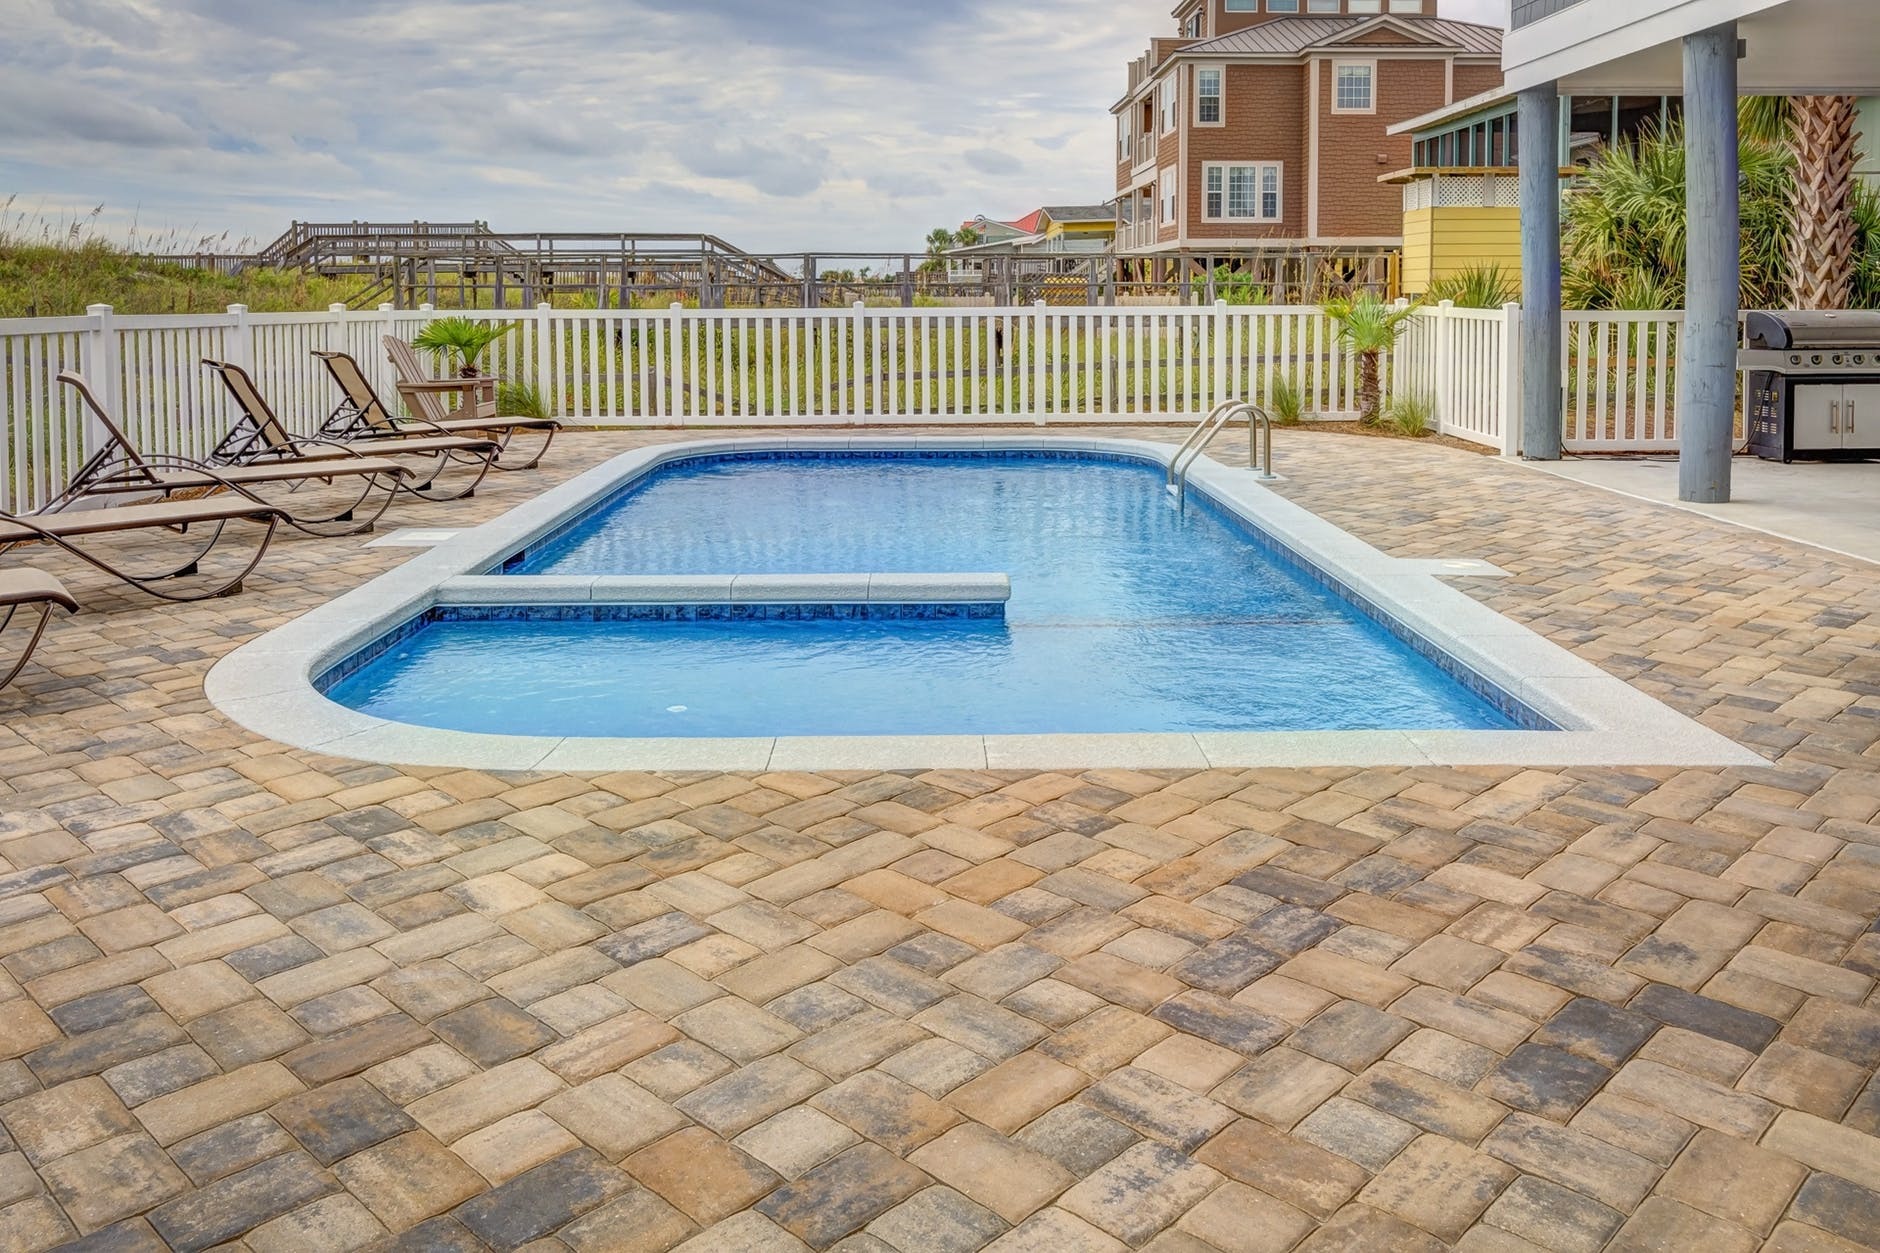 Things In Mind When Buying An Outdoor Patio Tile